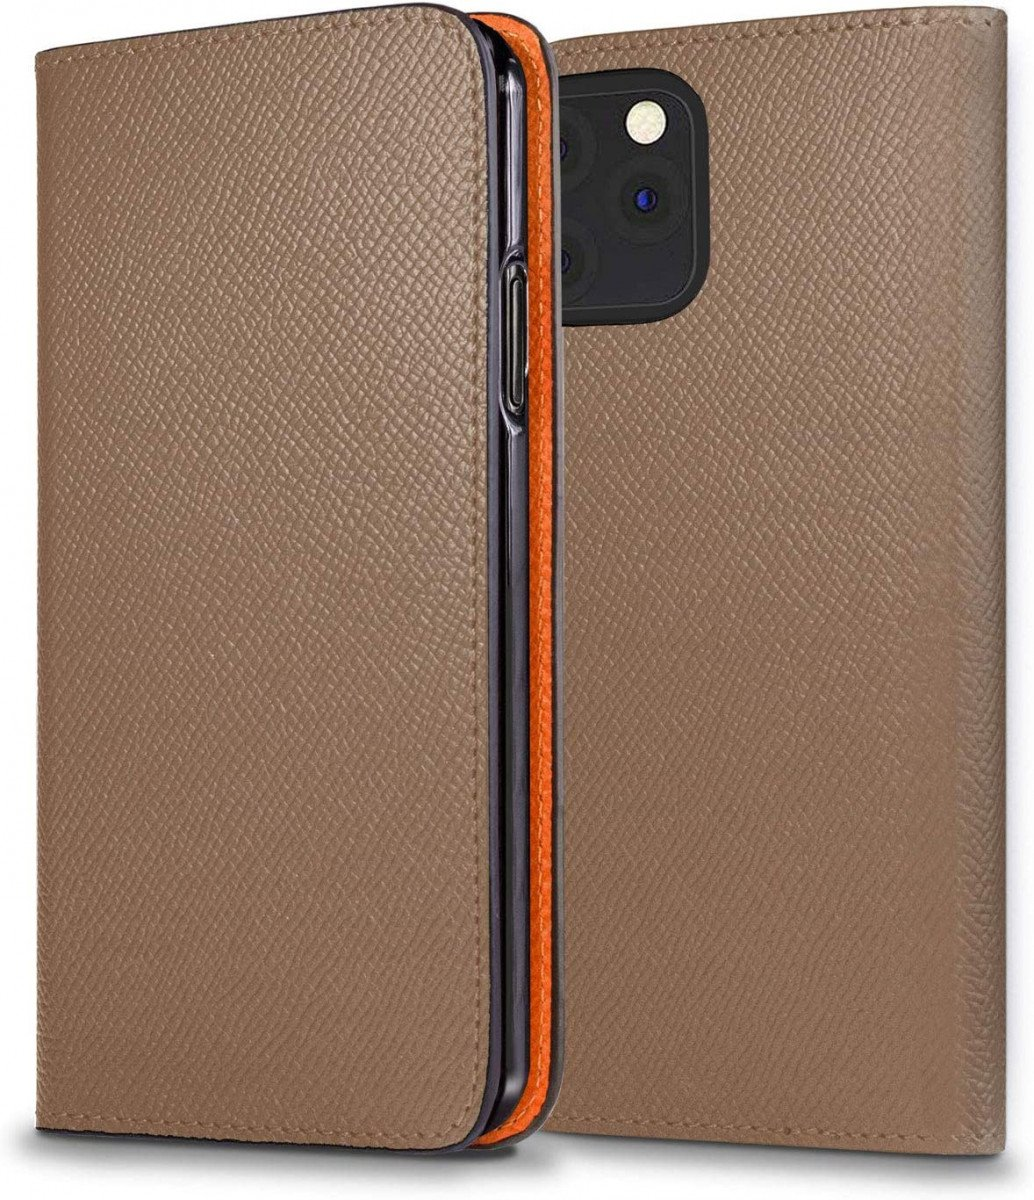 2021 Cool iPhone Case Review